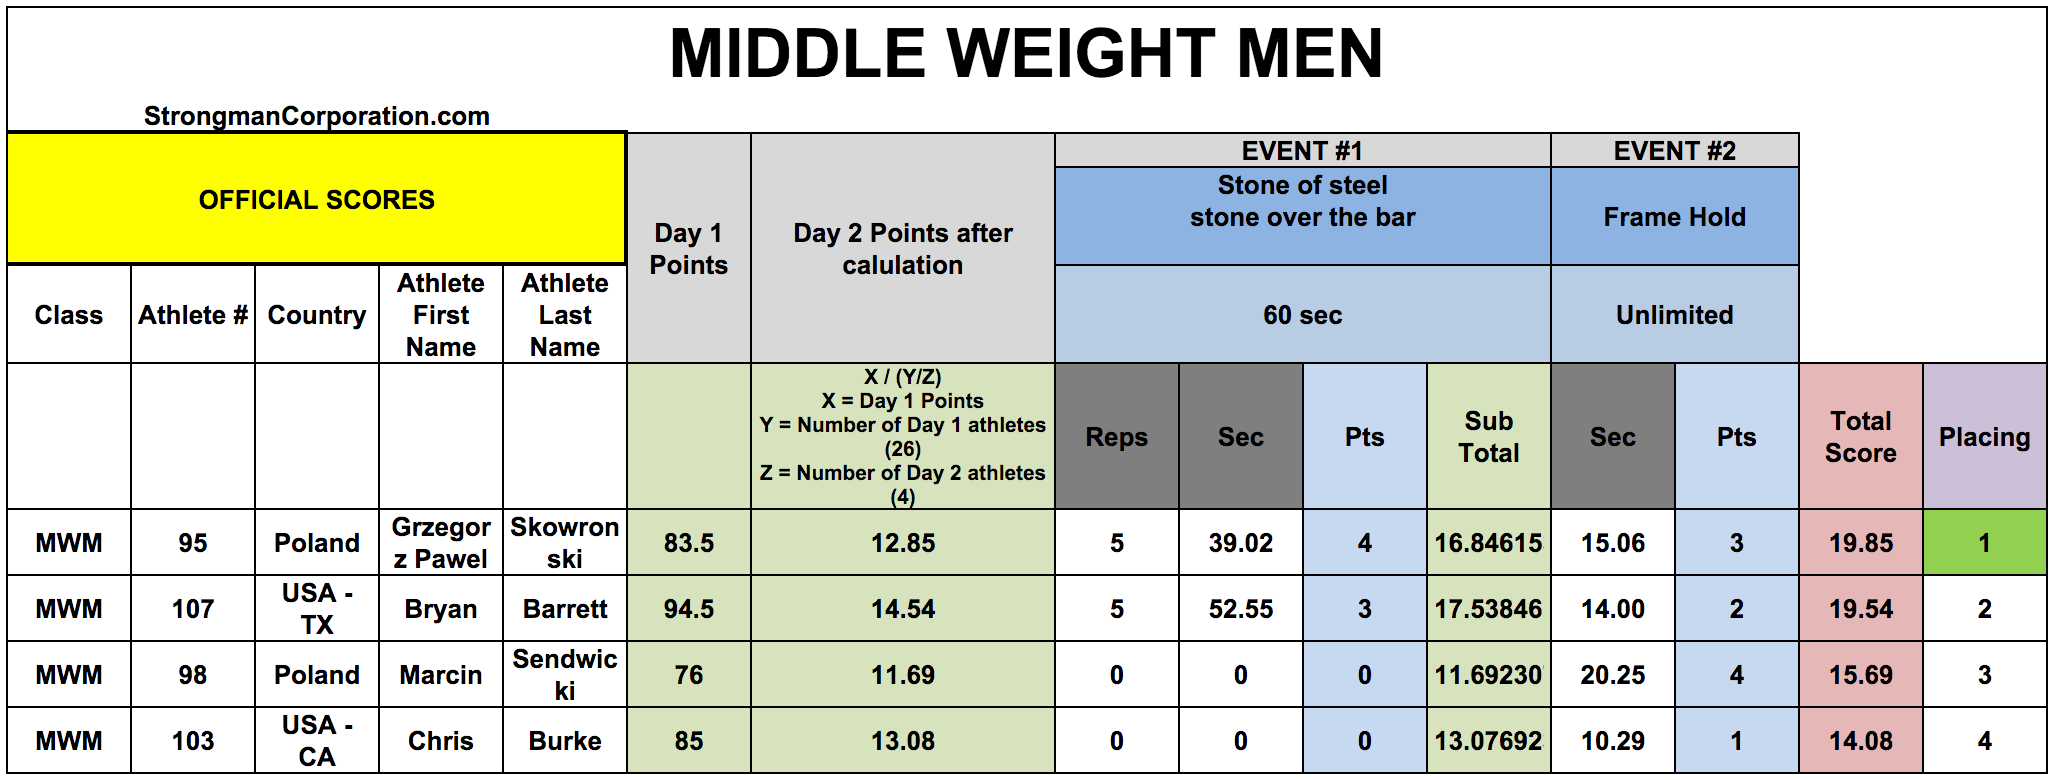 Middleweight Men